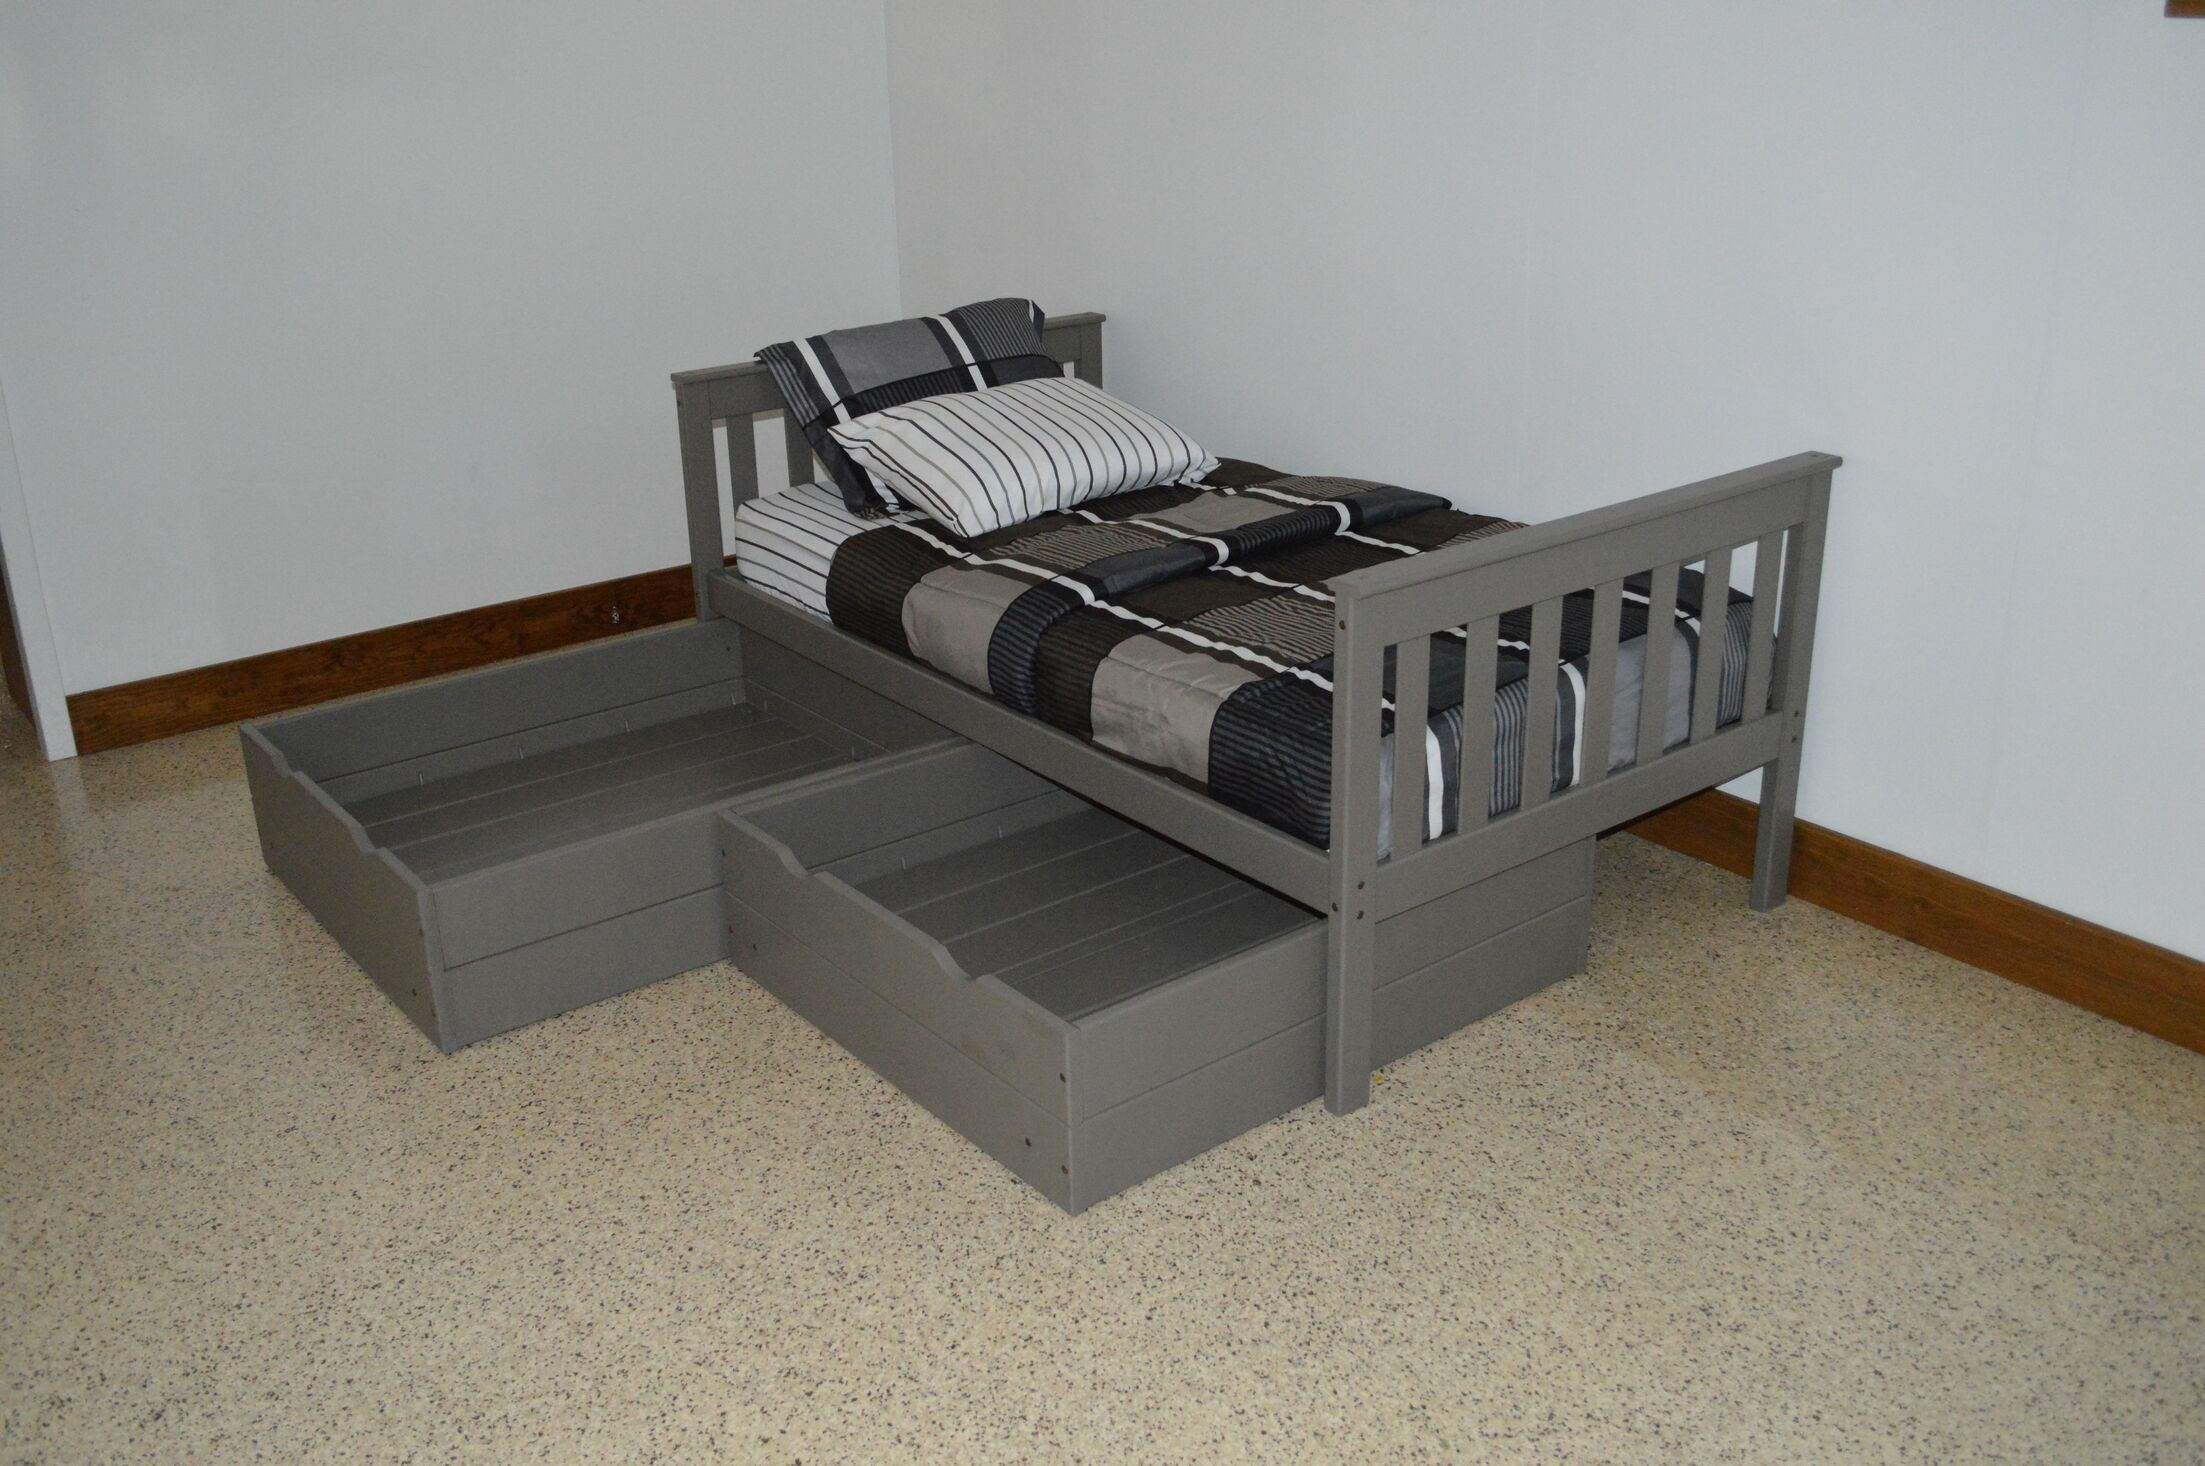 2 Piece Underbed Storage Drawer Set Color: Olive Gray, Size: Full